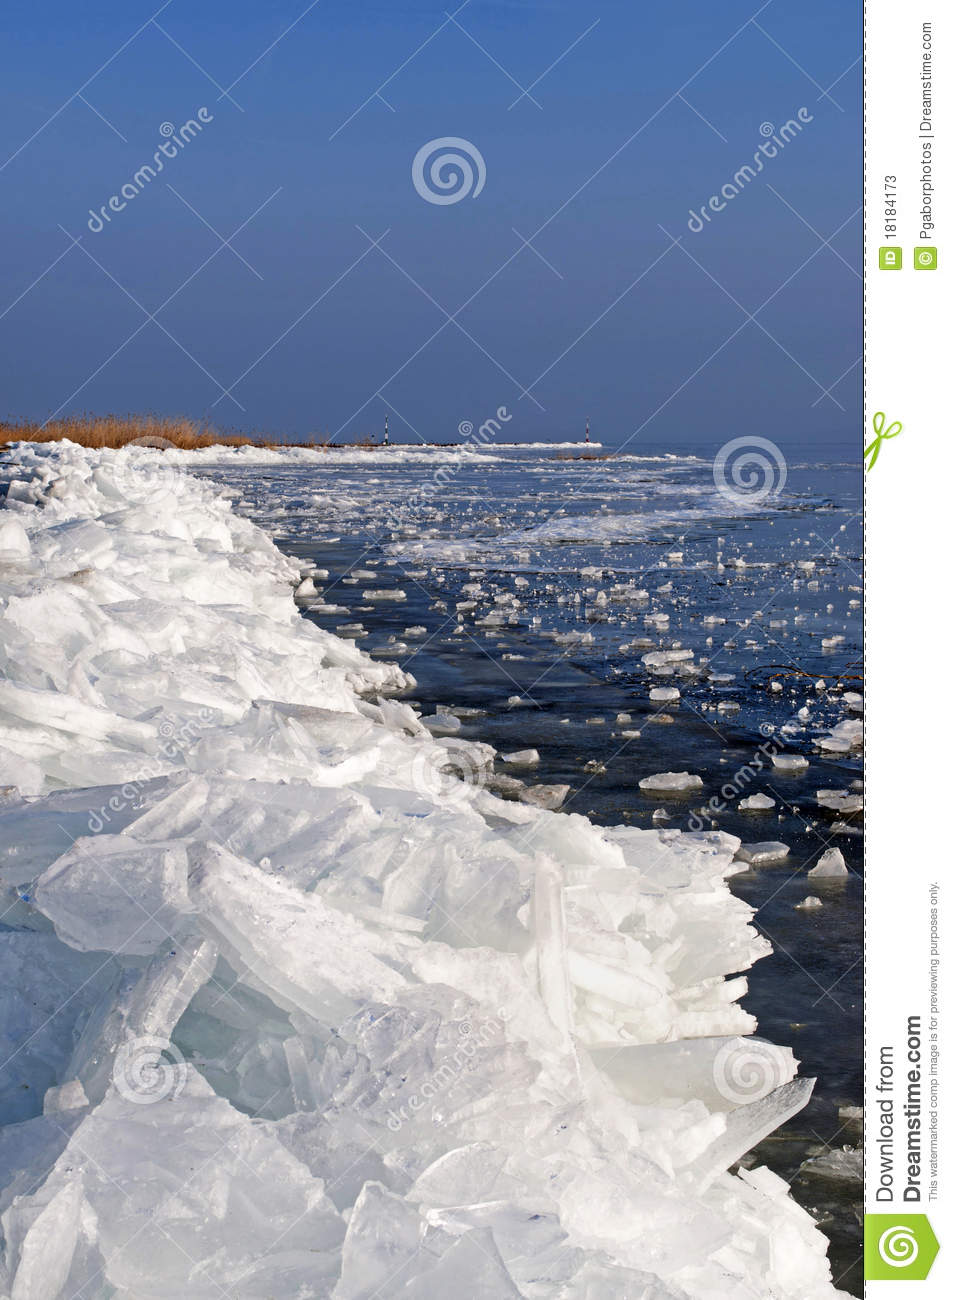 Ice Barricade On Lake Balaton,Hungary Stock Photos - Image: 18184173